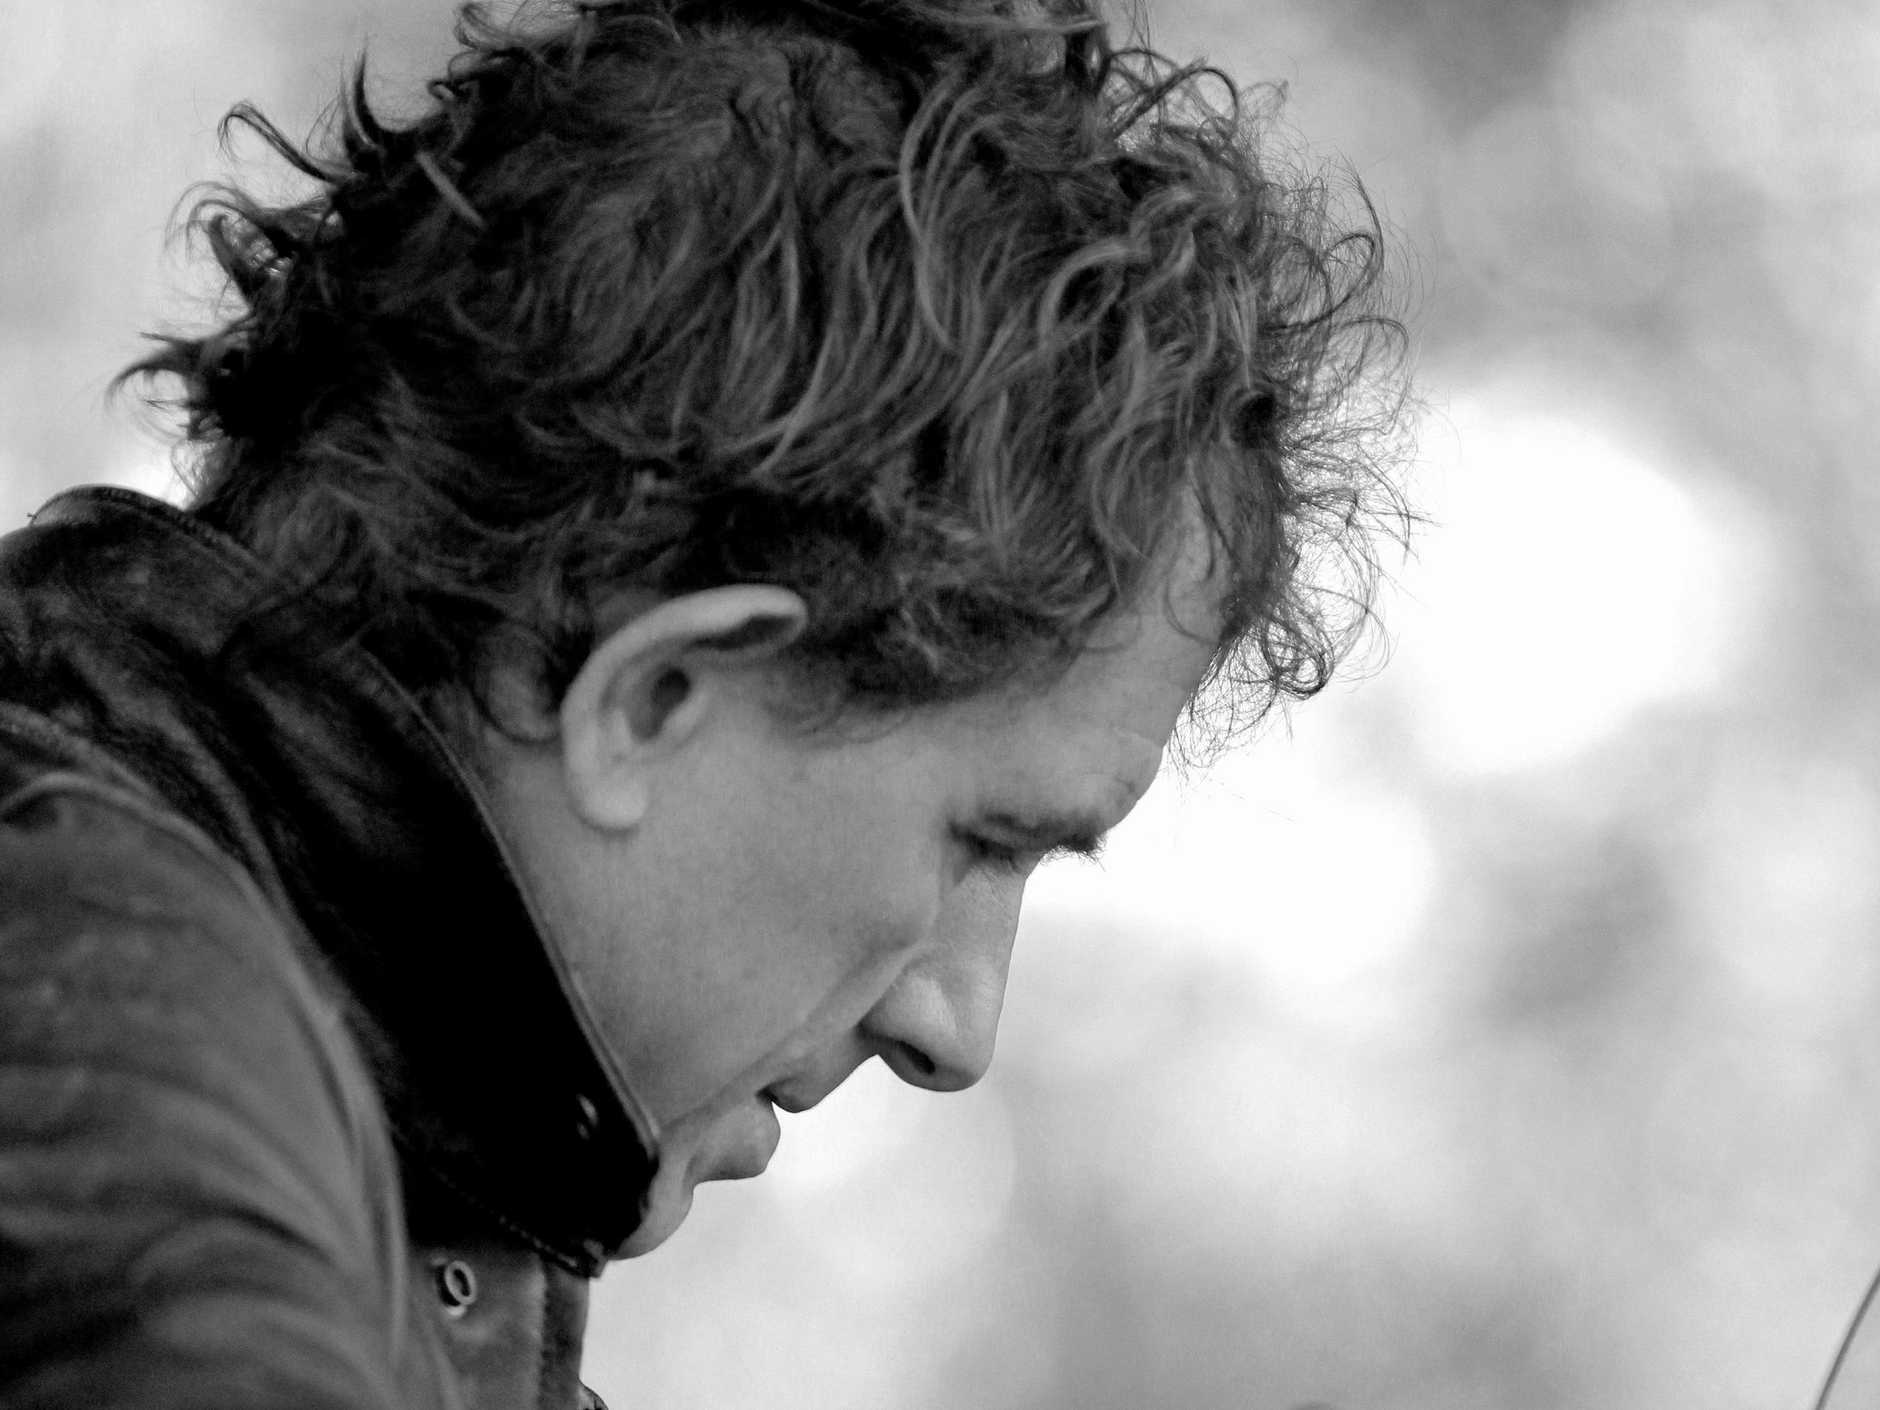 RESPECTED MUSICIAN: As one of Australia's iconic musicians, Ian Moss will perform at One Hot Night in Rockhampton on Saturday before the Way Out West Fest in April.